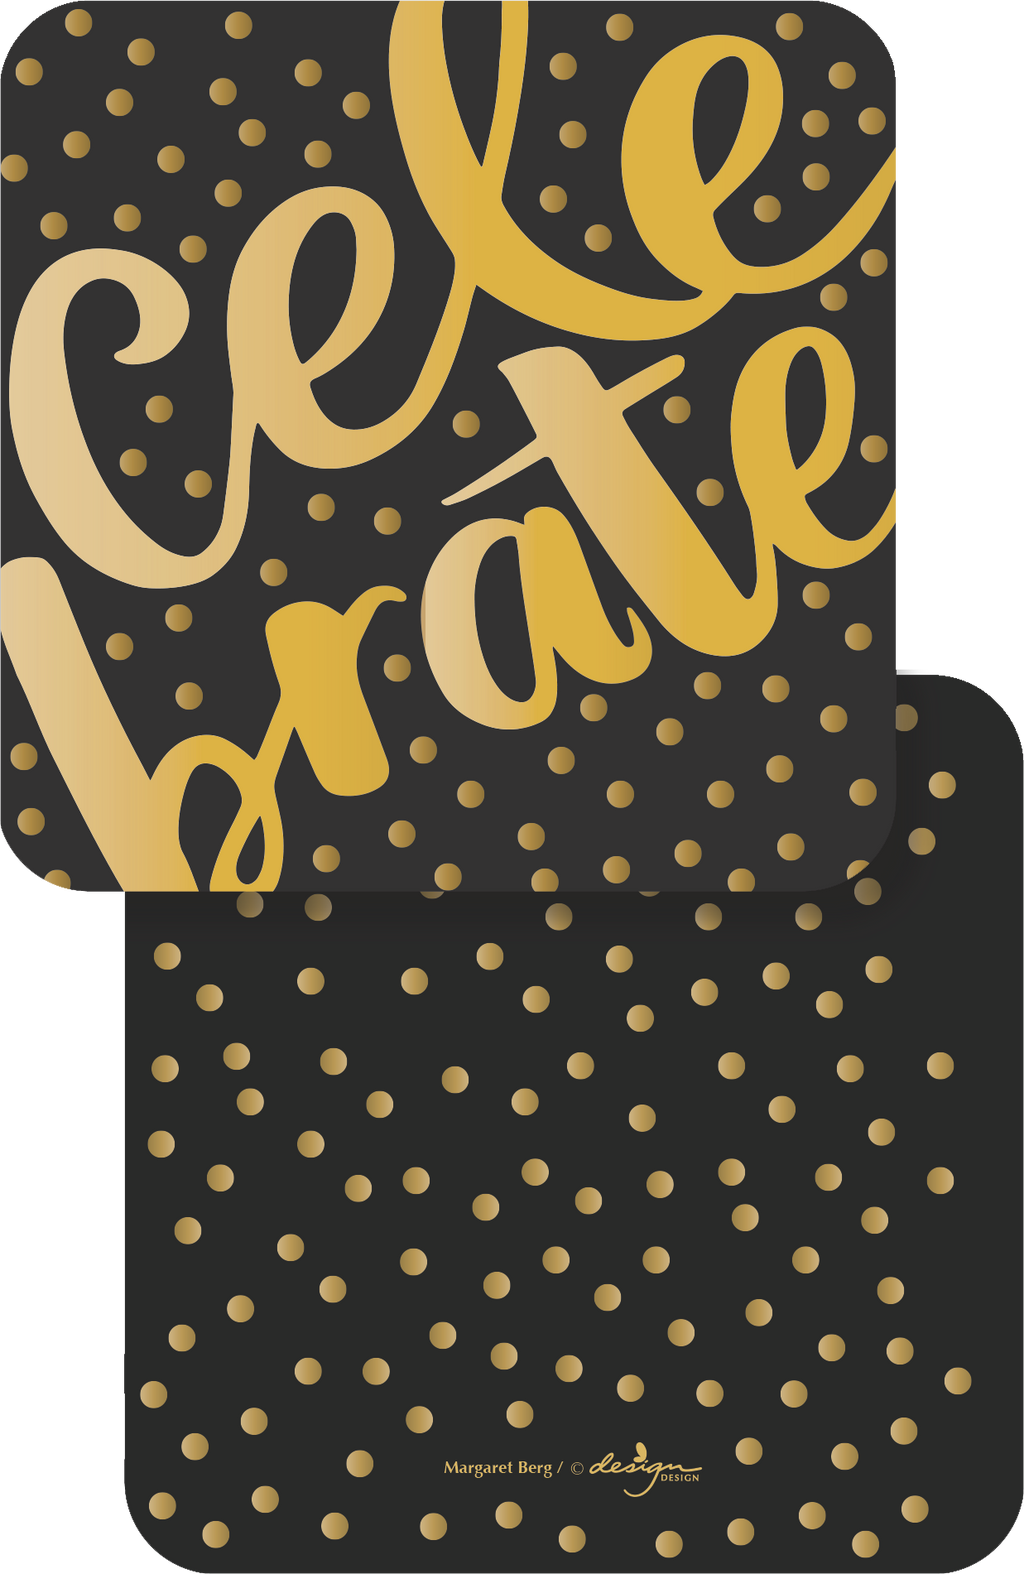 black coaster with gold celebrate font with gold dots on front and back is covered in gold dots